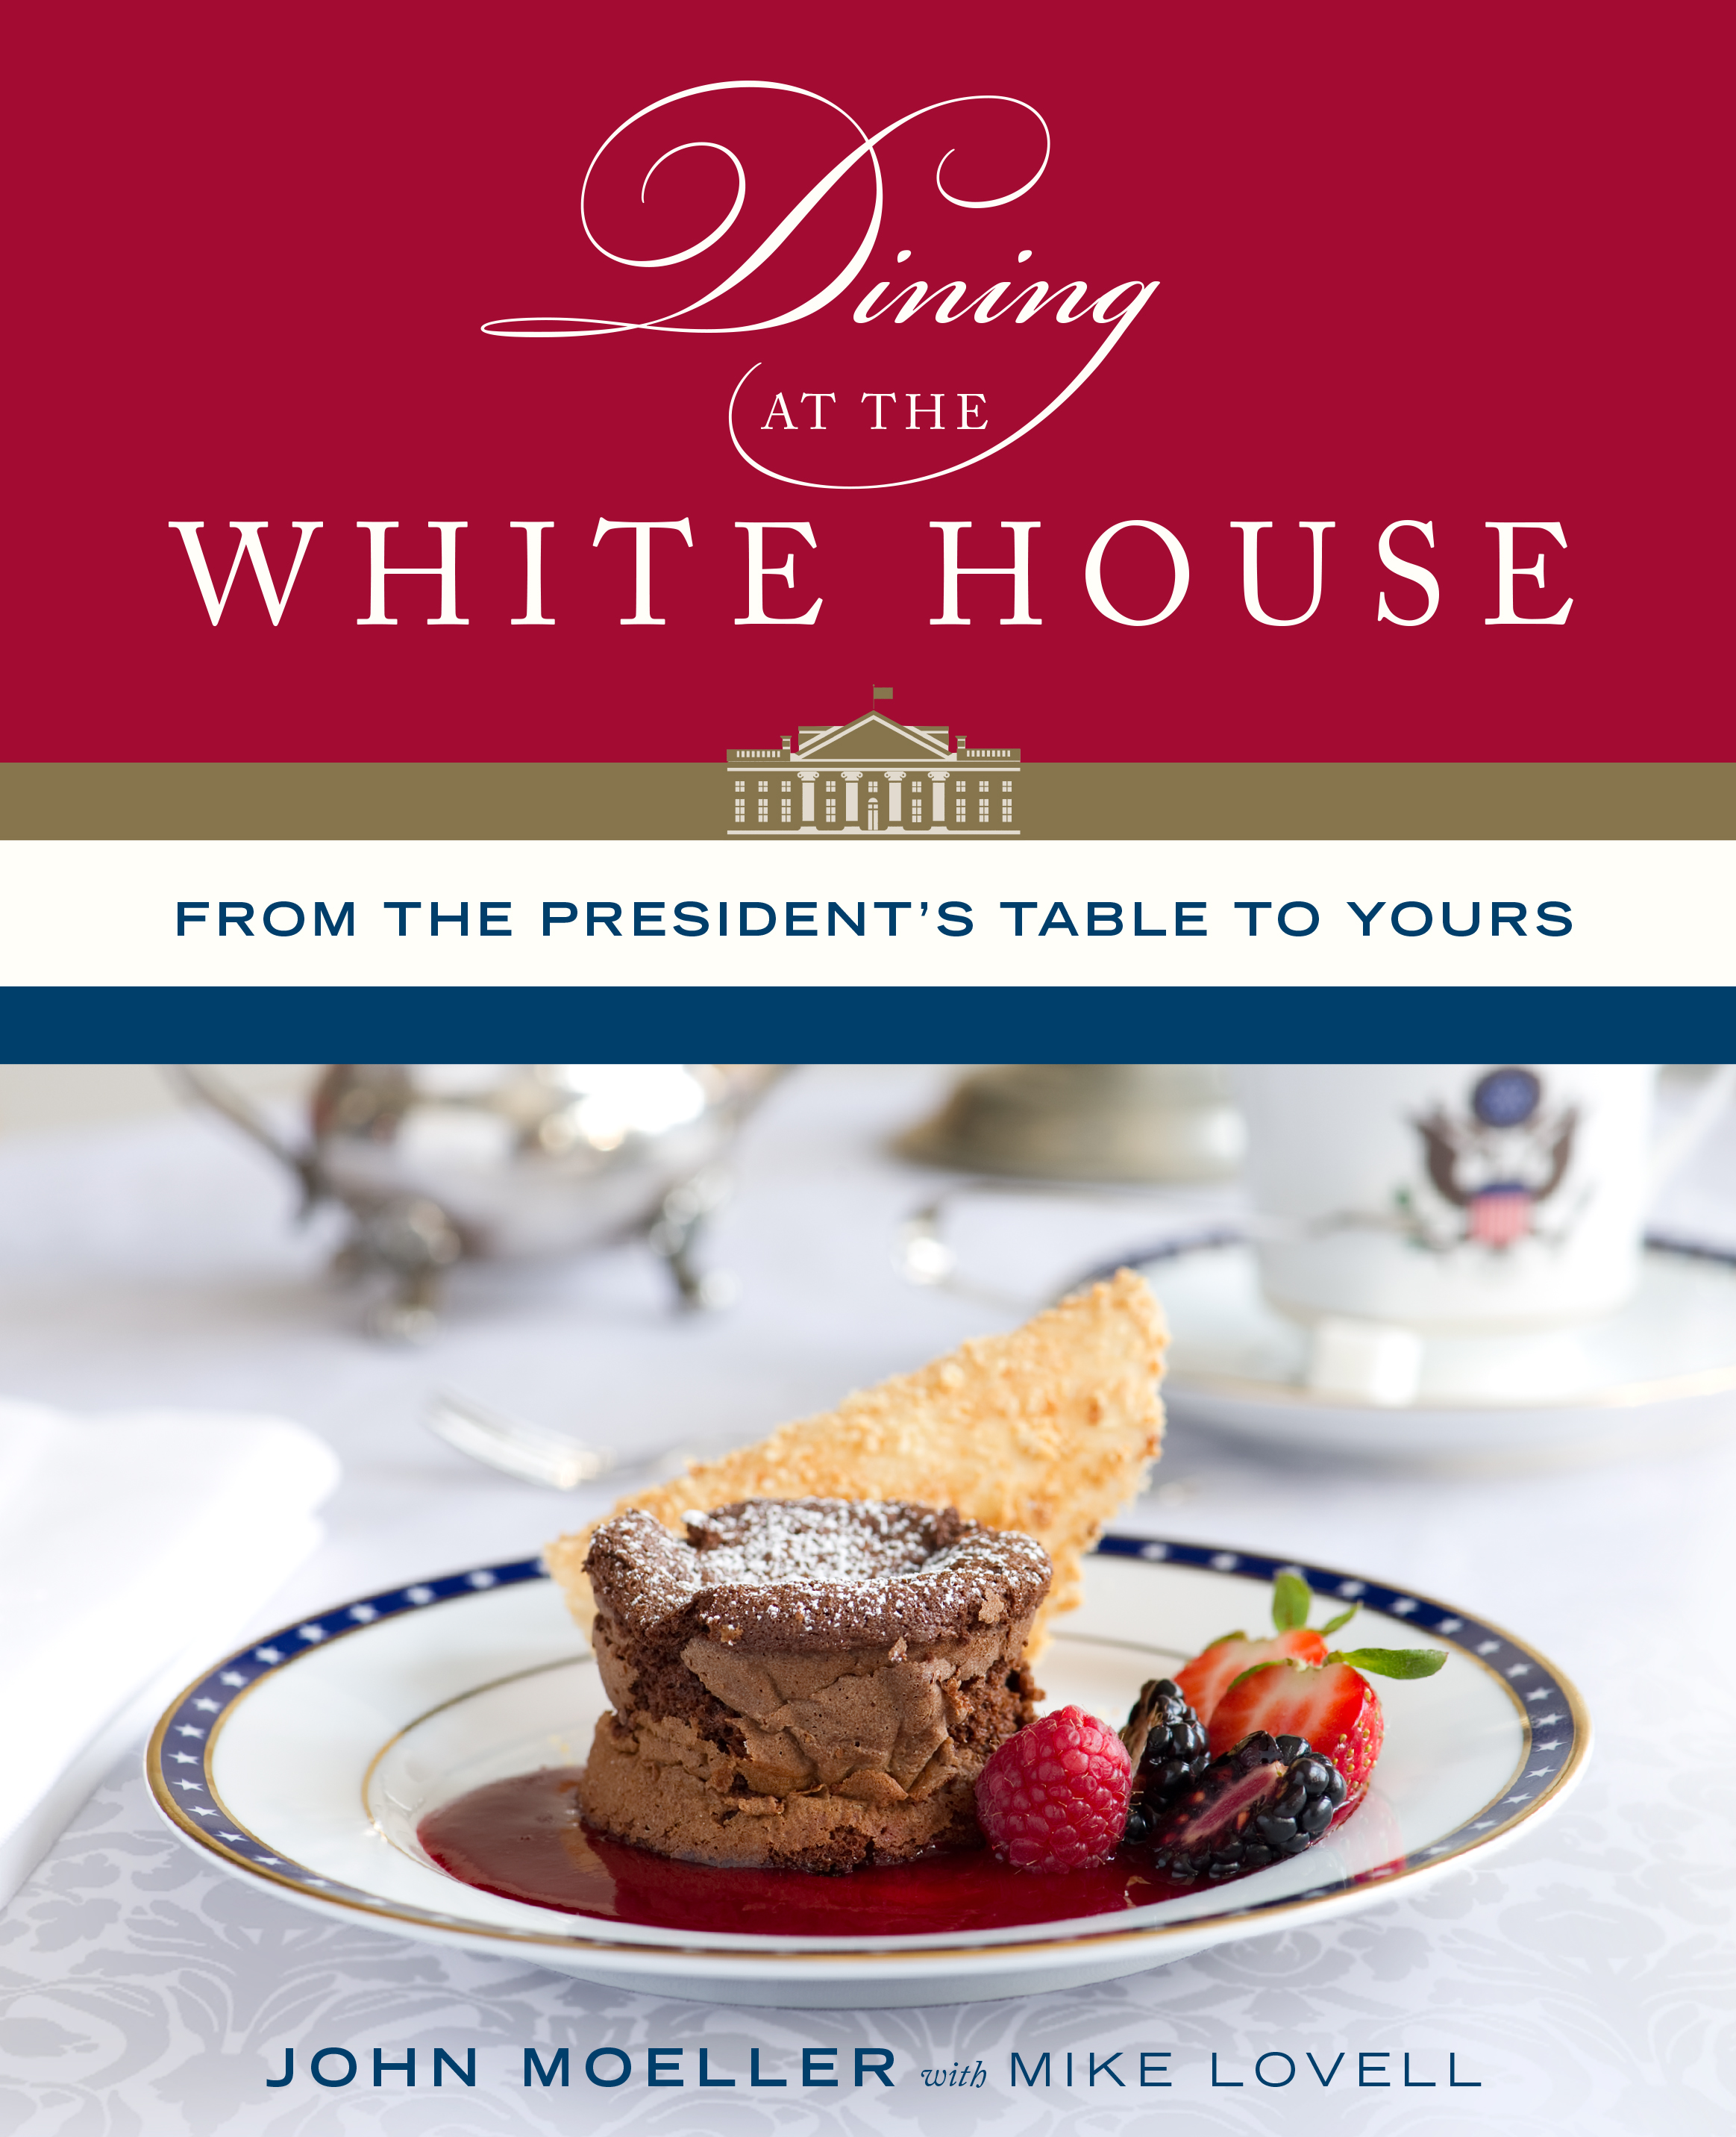 DWH-16853-DiningAtWhiteHouse-BookCover-crop